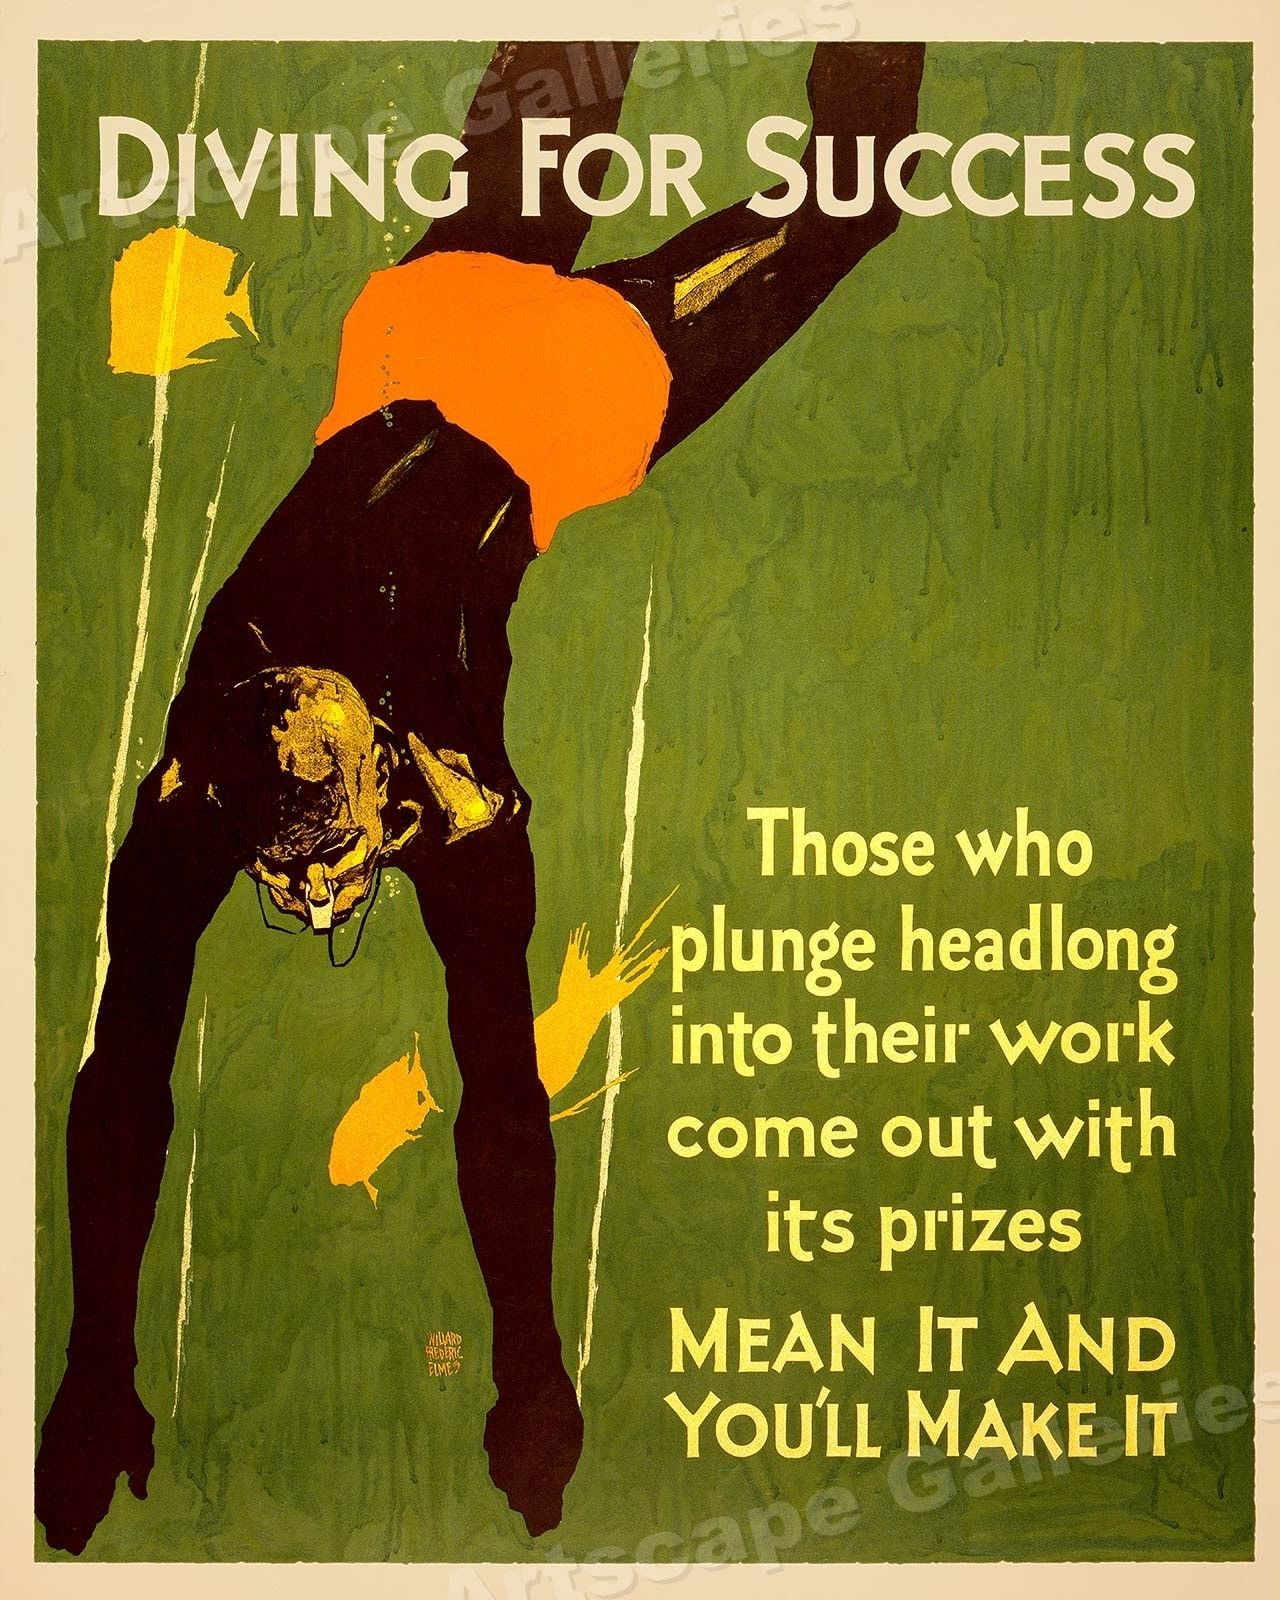 1920s Mather Business Motivational Poster Diving For Success 16x20